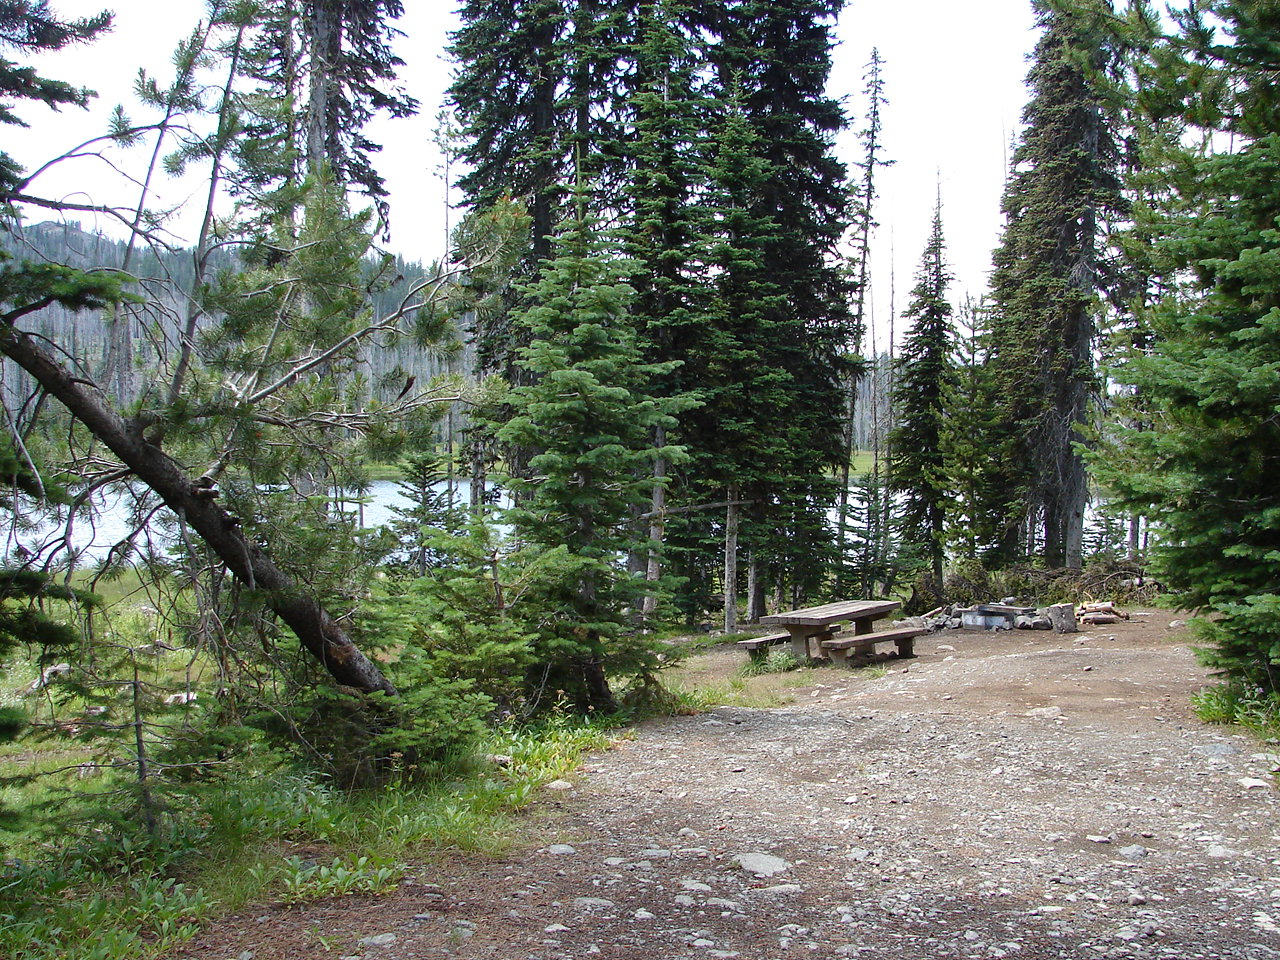 Forest campsite with lake in background